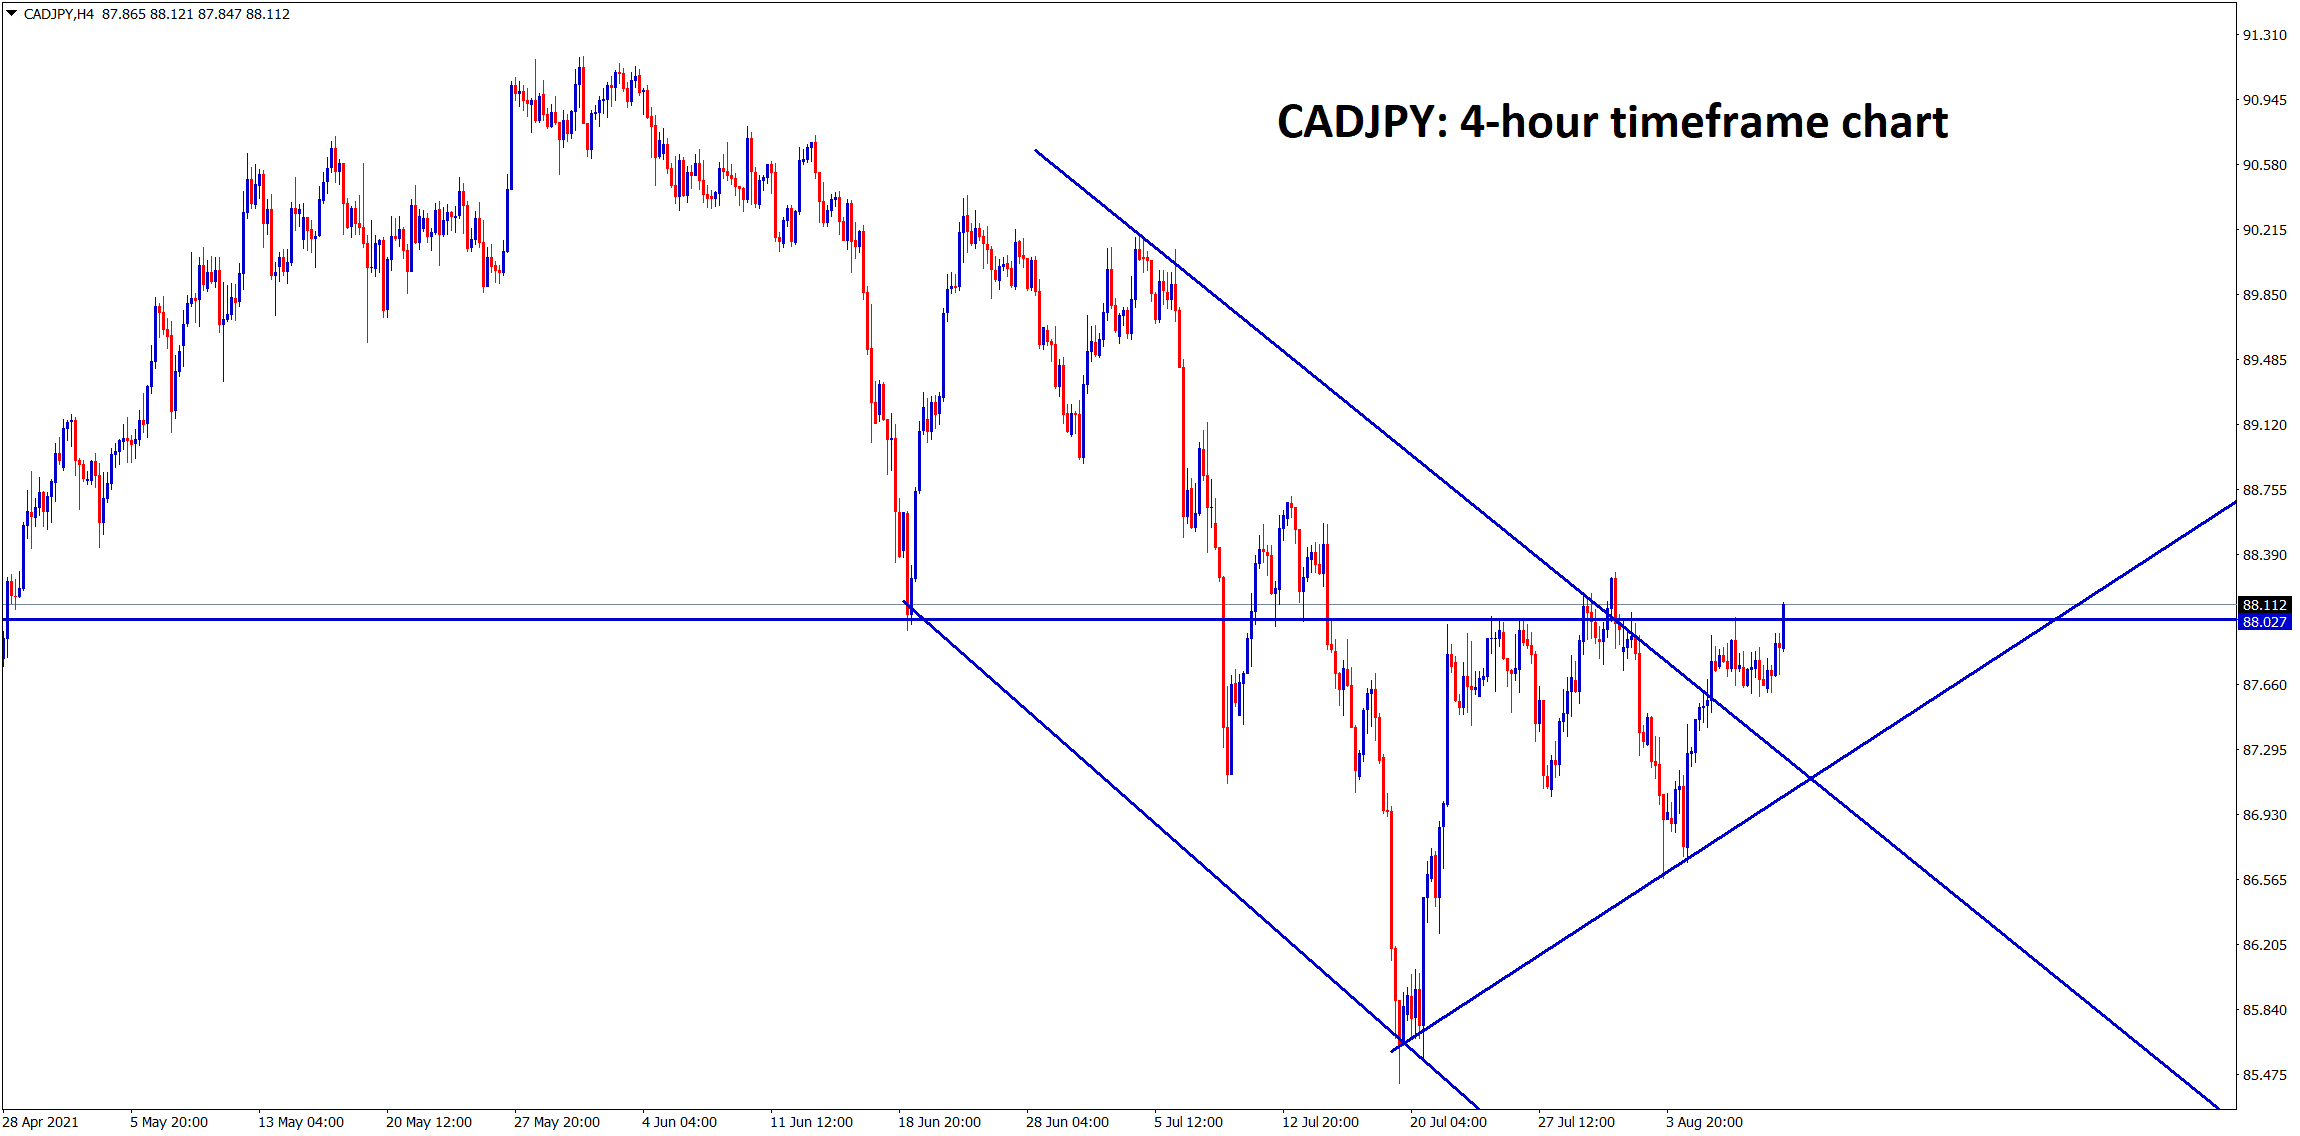 CADJPY continues to move up after breaking the descending channel and it has formed an Ascending Triangle pattern